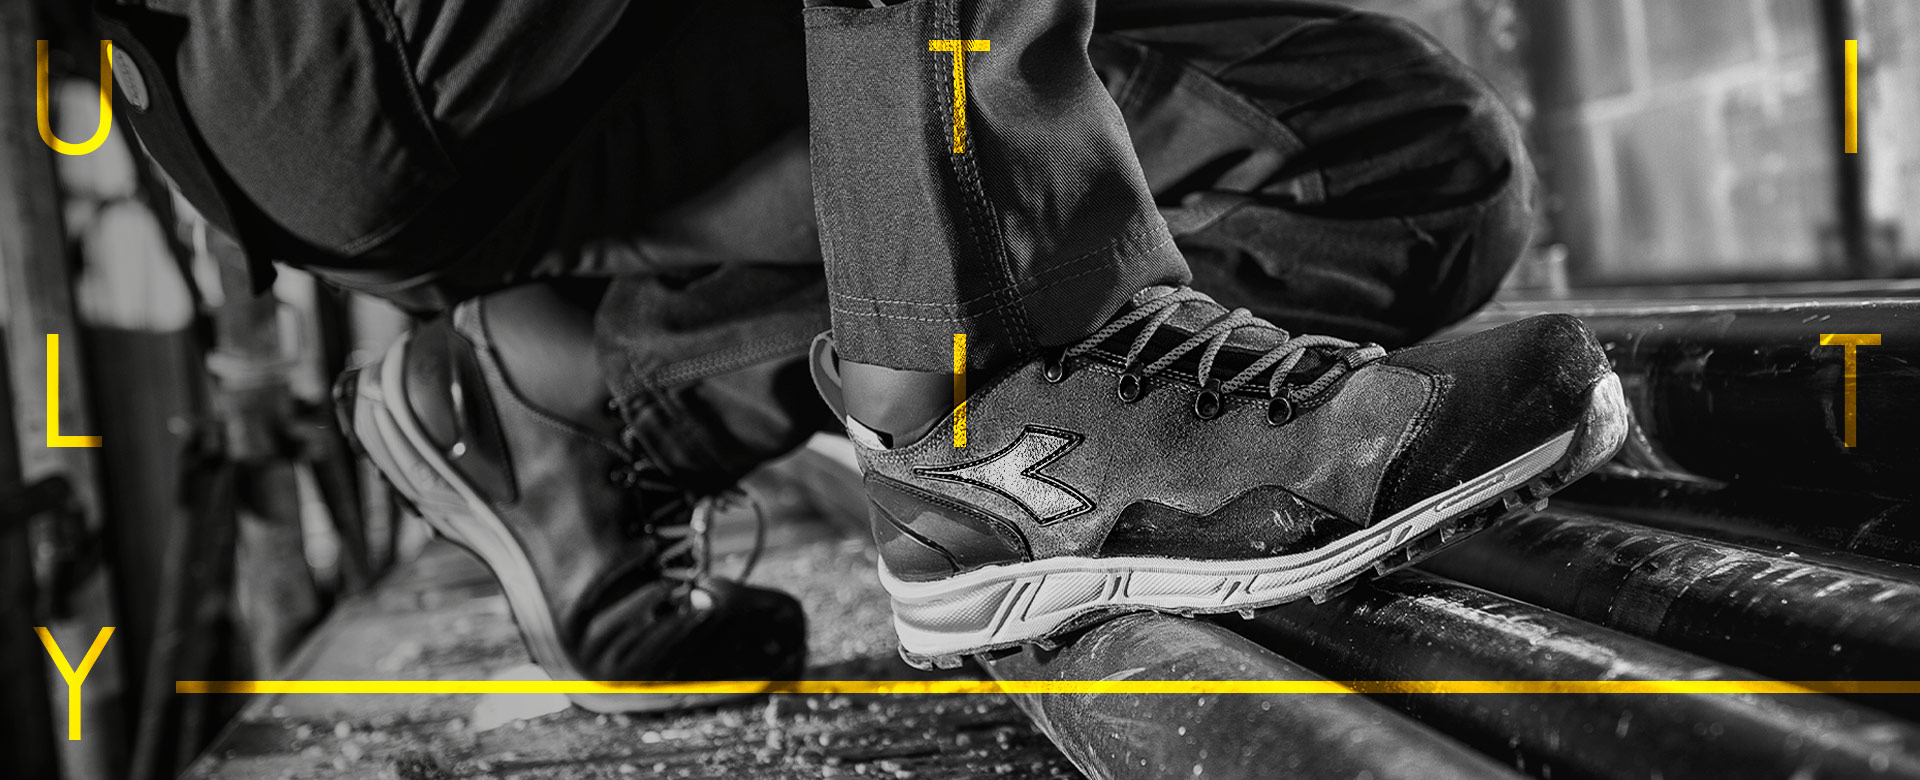 f059ddd2cf Diadora Utility Line: Clothing & Shoes for Accident Prevention ...